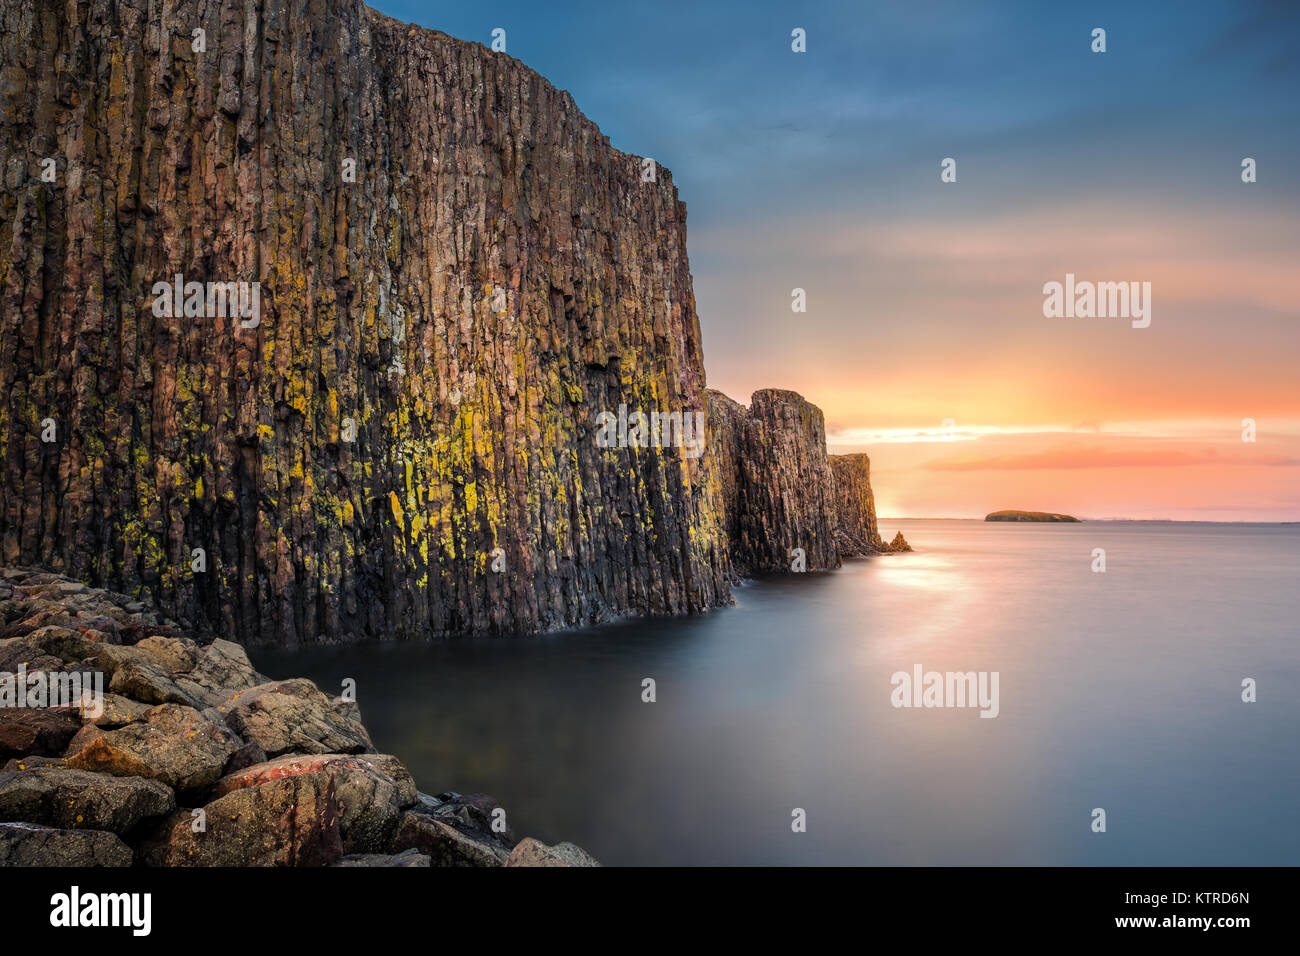 Sugandisey, the basalt island, near Stykkisholmur, Iceland - Stock Image